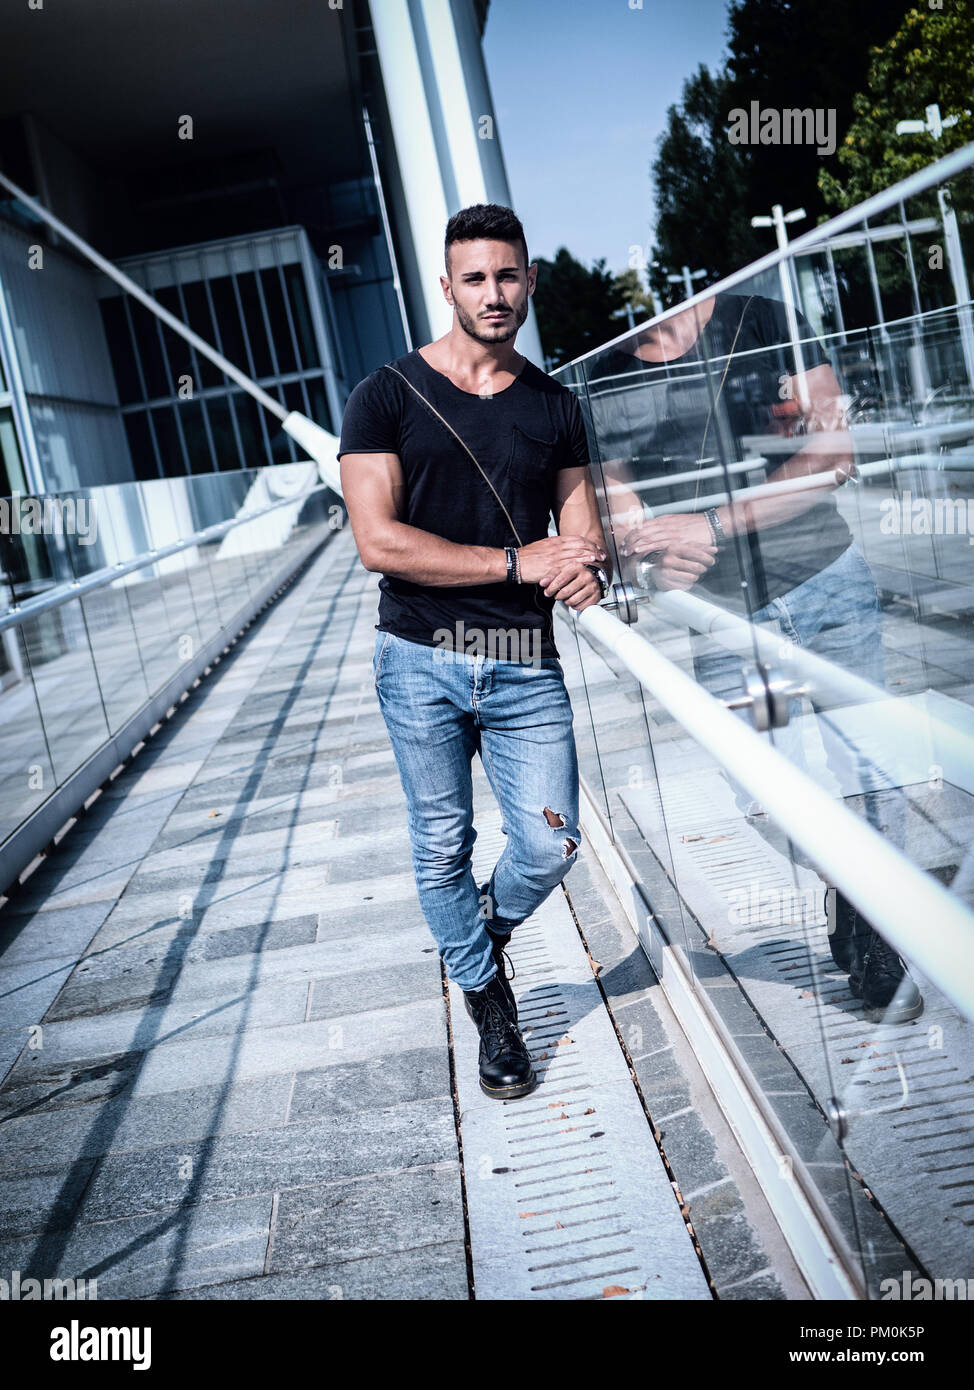 367e1bcb One handsome young man in urban setting in European city, wearing jeans and  black t-shirt